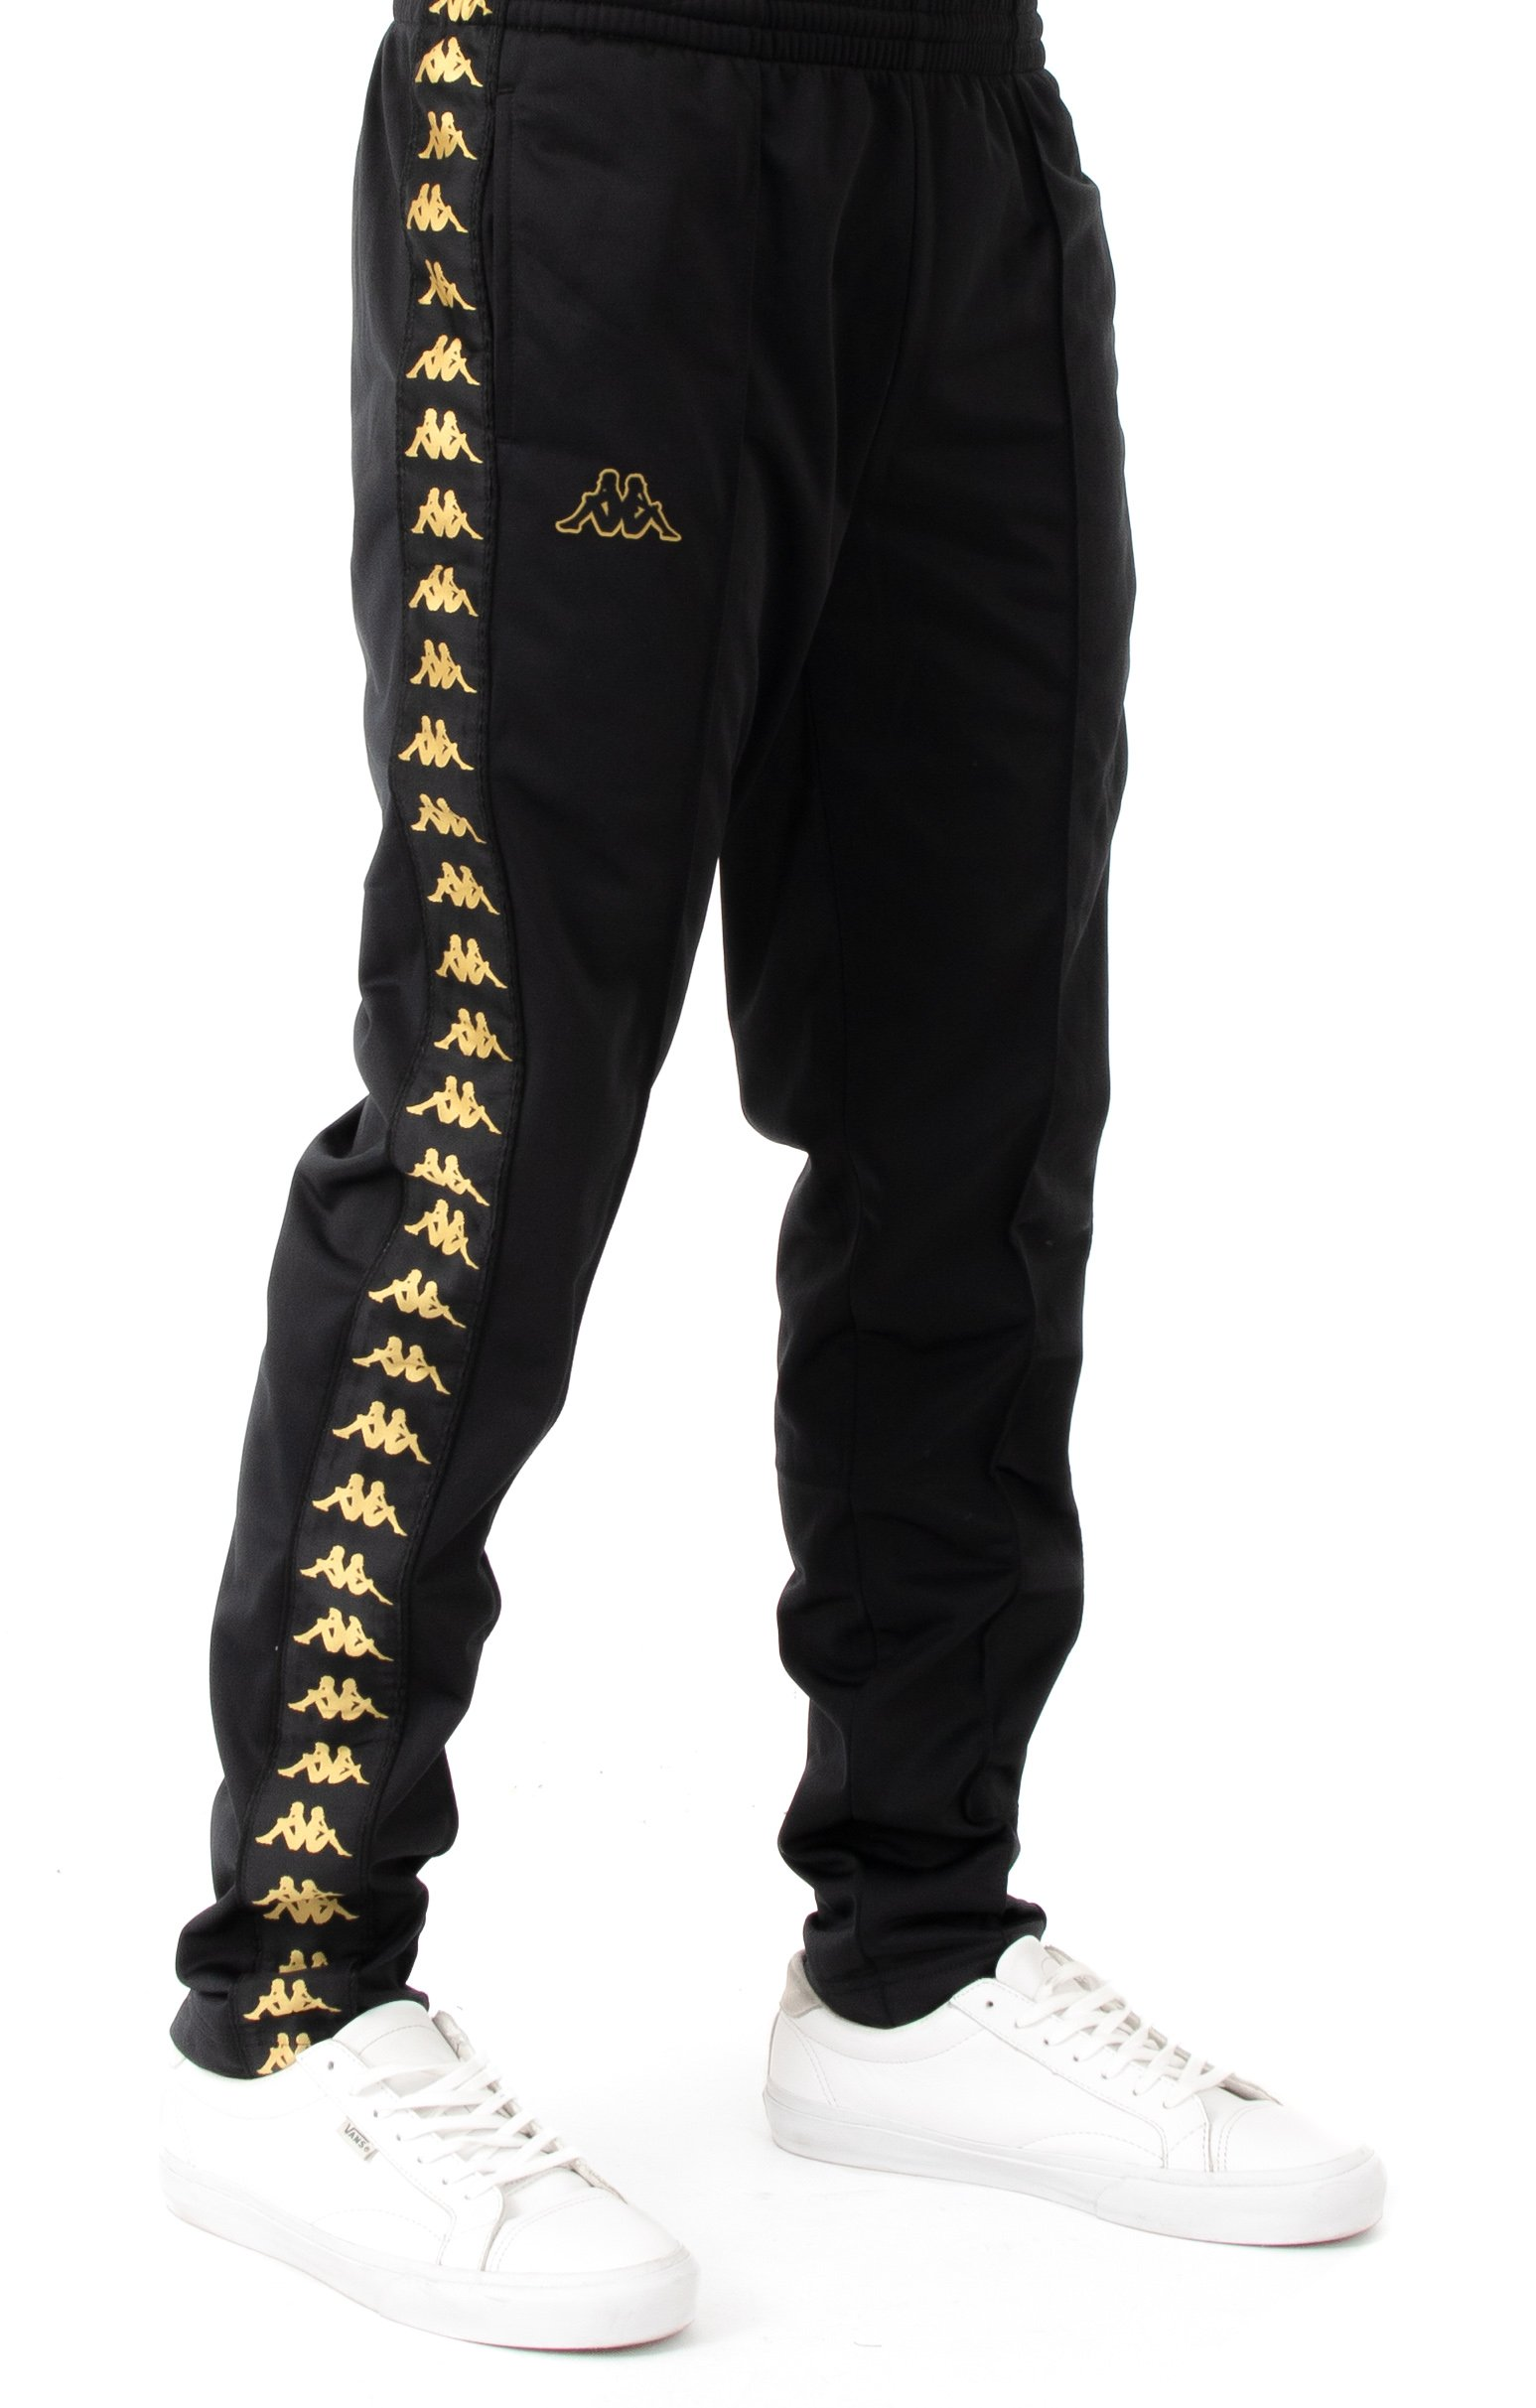 222 Banda Astoria Slim Track Pants - Black/Gold